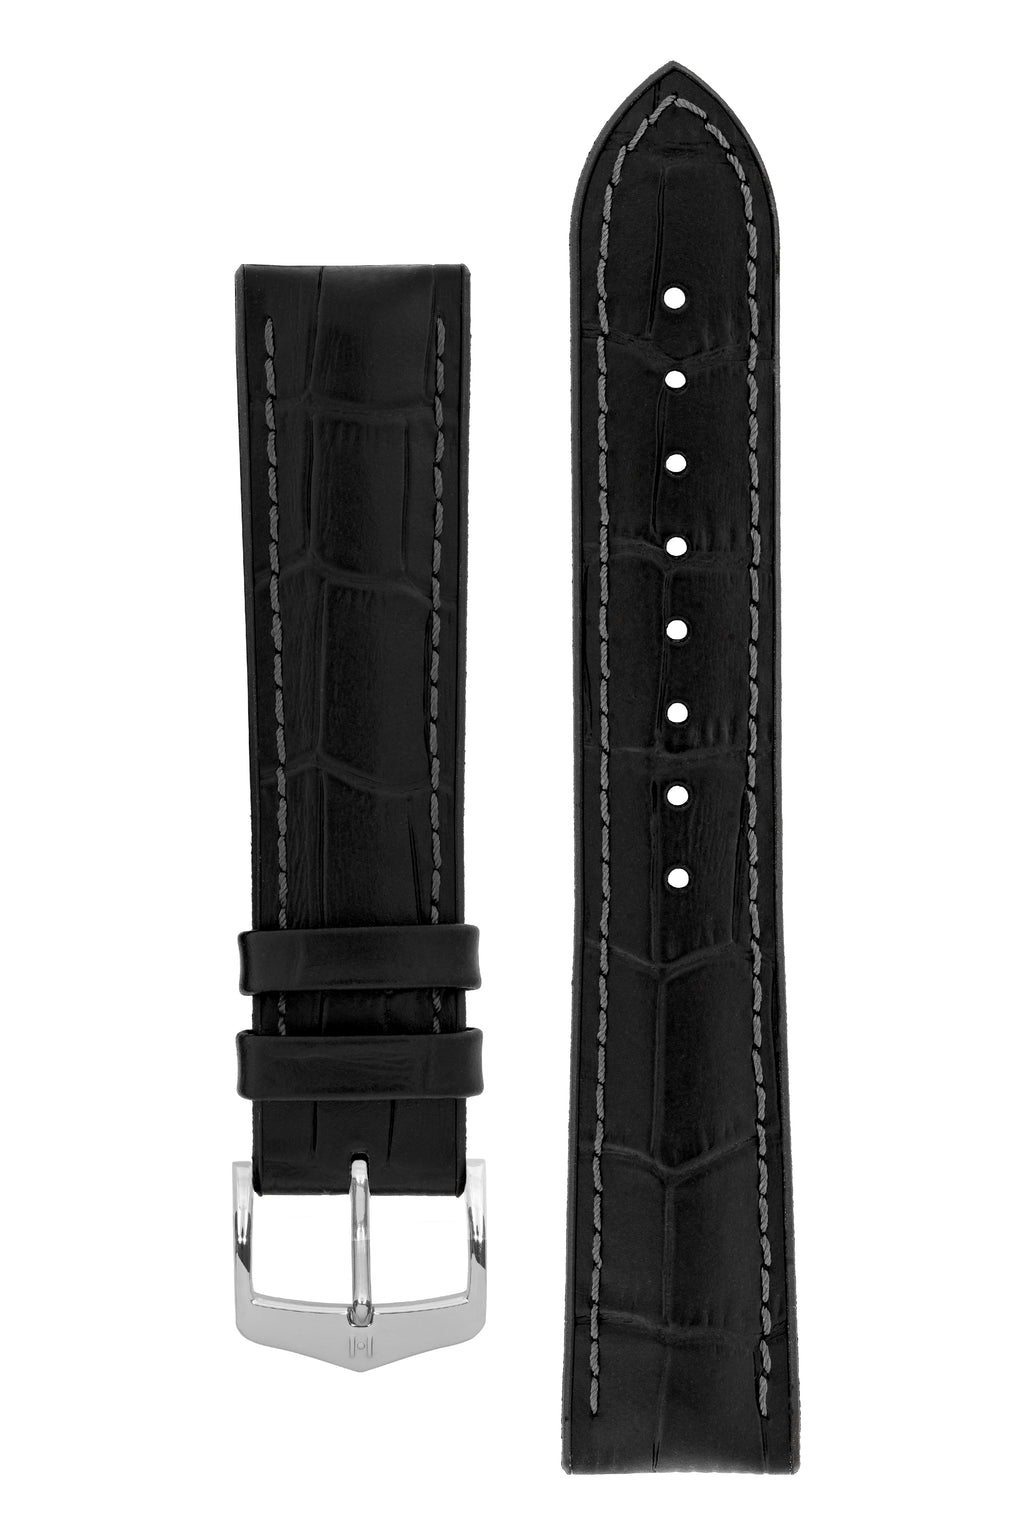 Hirsch PAUL Alligator Embossed Performance Watch Strap in BLACK